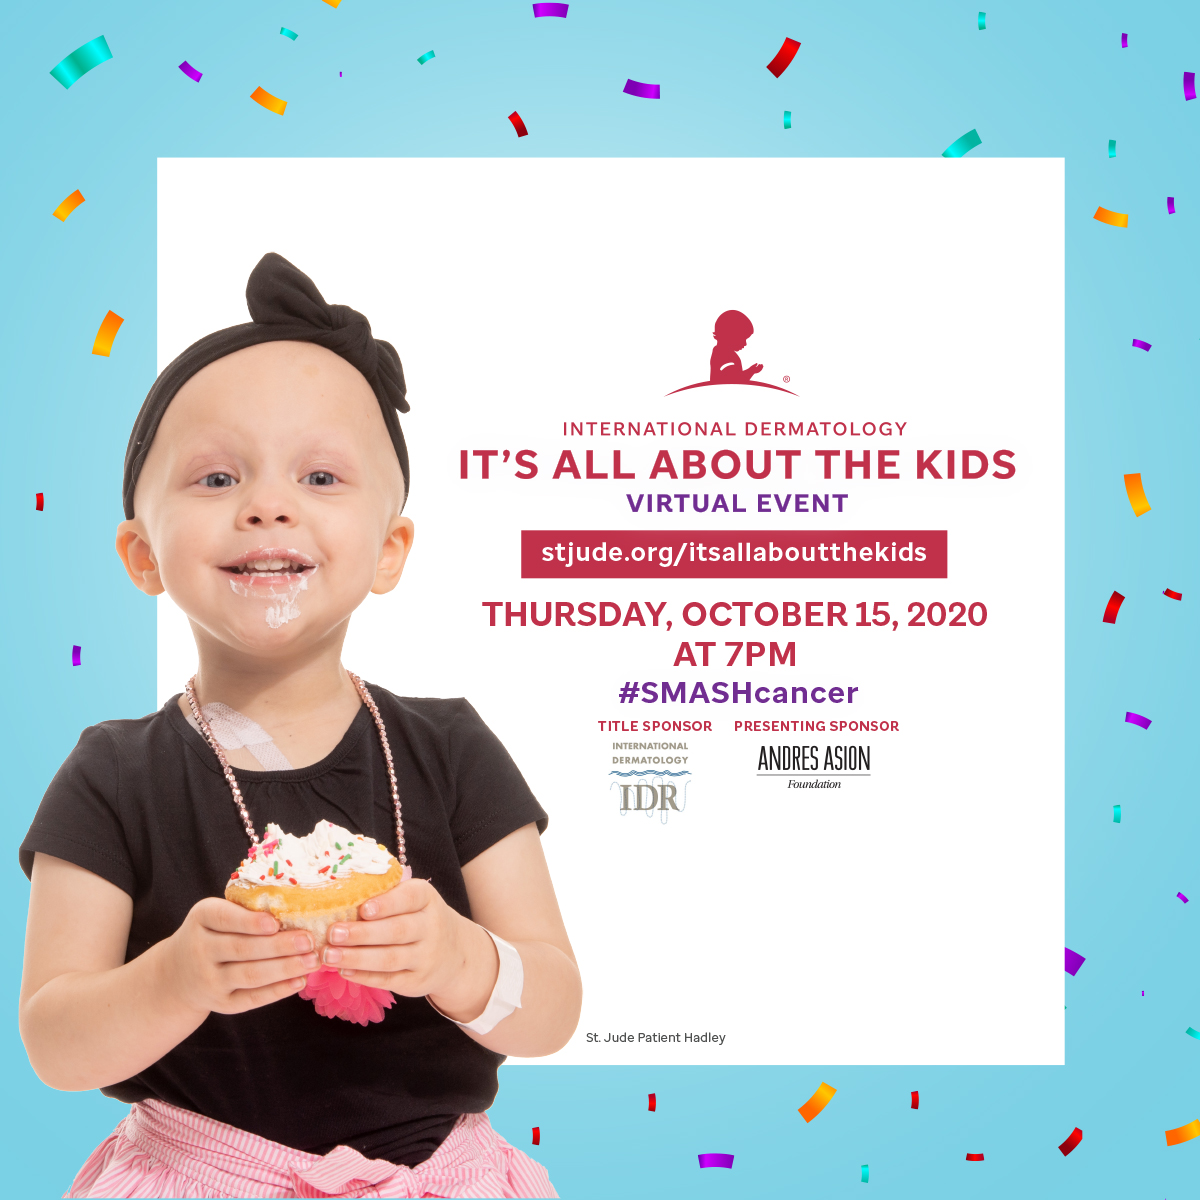 International Dermatology  It's All About the Kids Virtual Event Presented by The Andres Asion Foundation